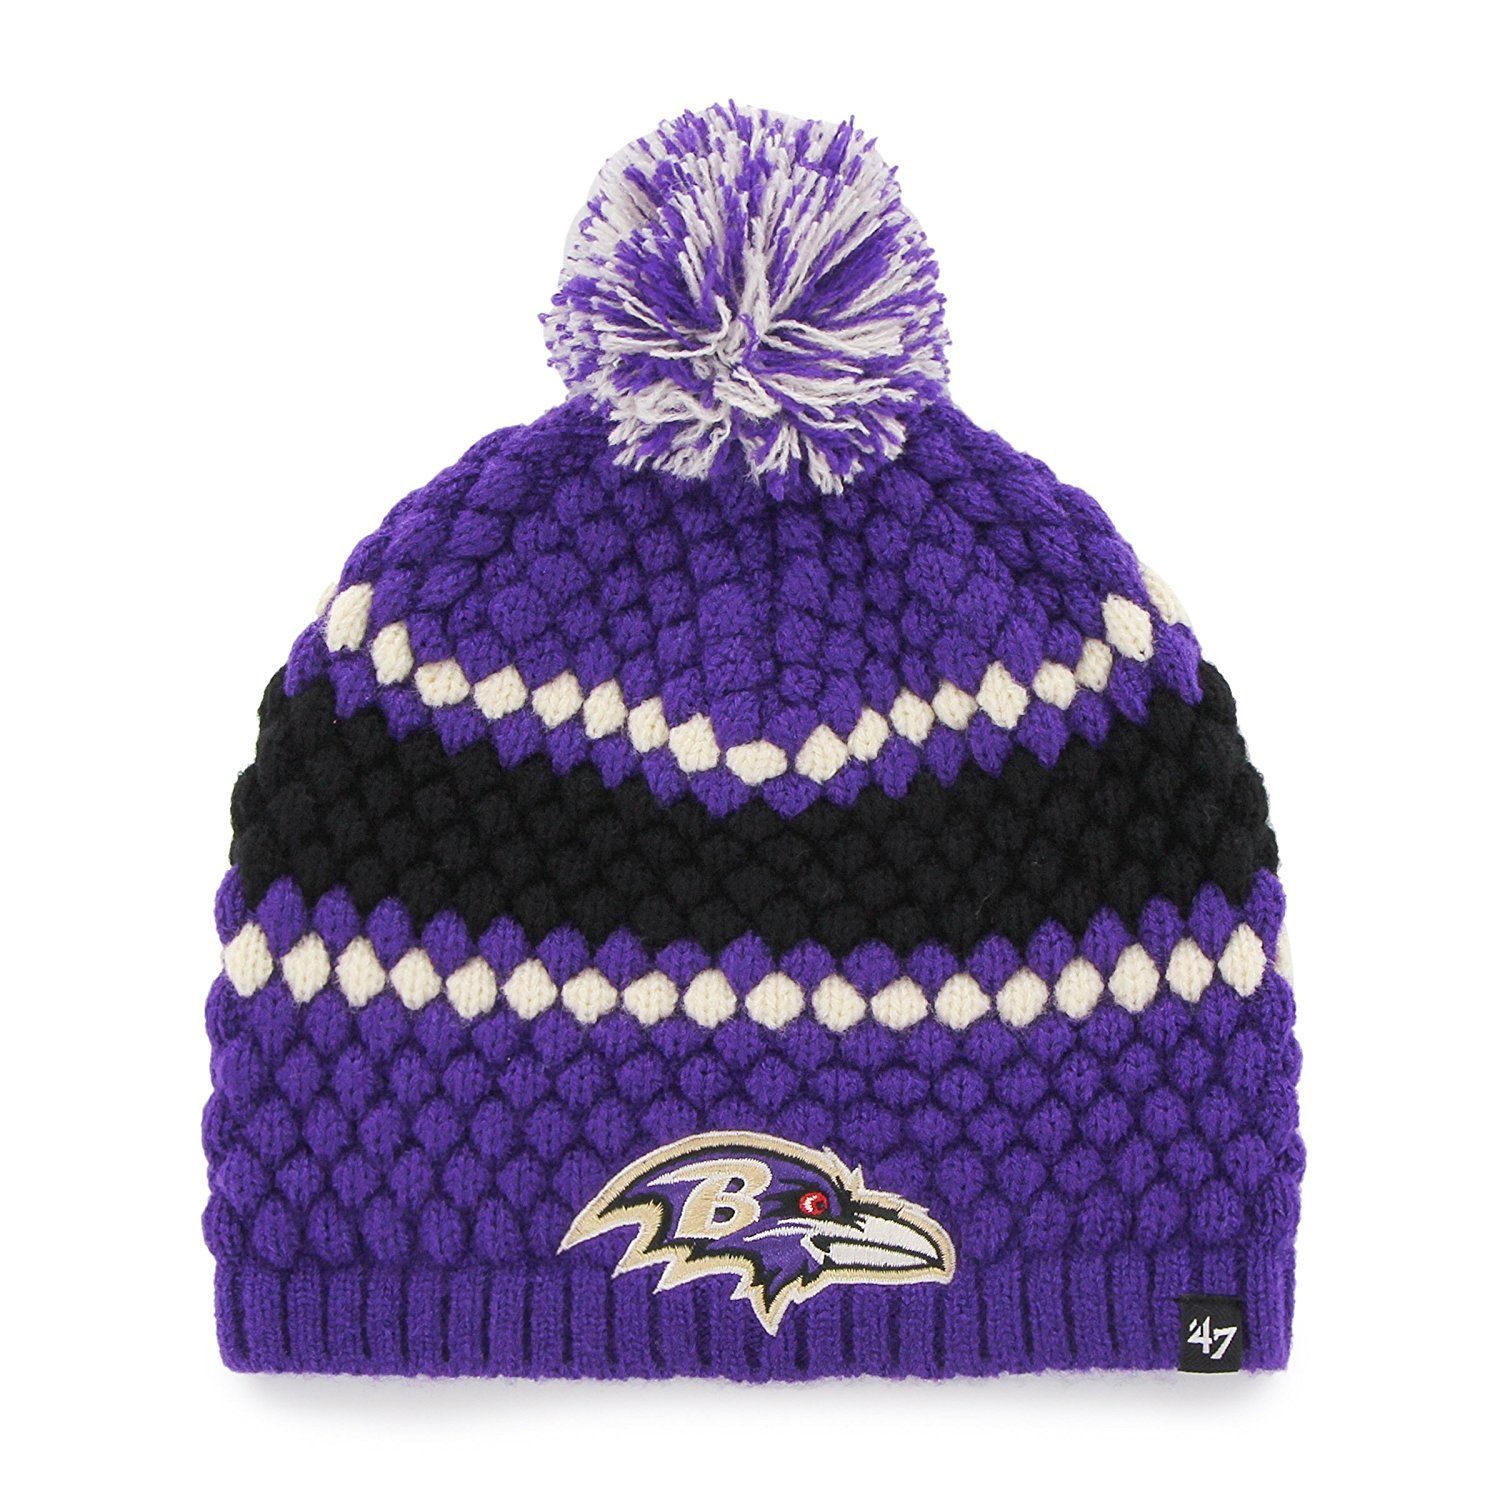 03c78afadffb9 Amazon.com   NFL Baltimore Ravens Women s  47 Leslie Knit Beanie with Pom